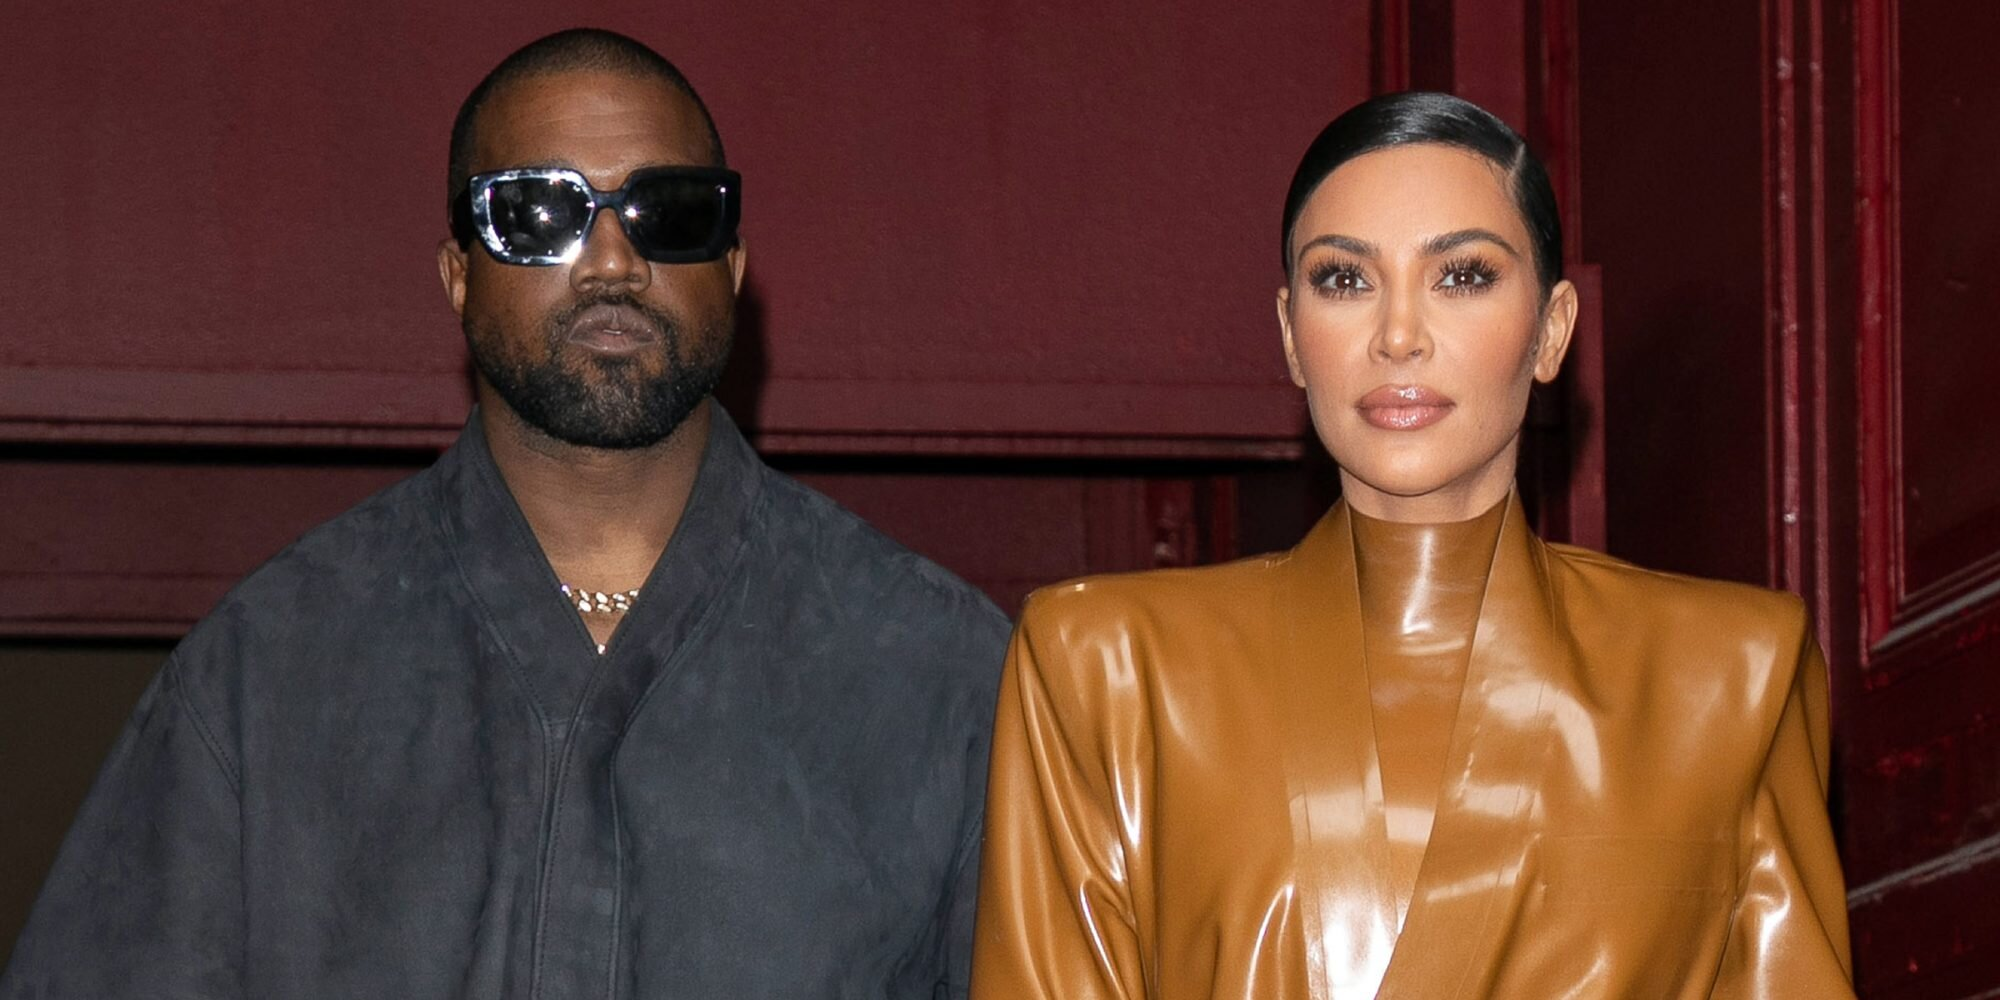 Kim Kardashian Includes Kanye West in Father's Day Tribute amid Divorce: 'Love You Unconditionally'